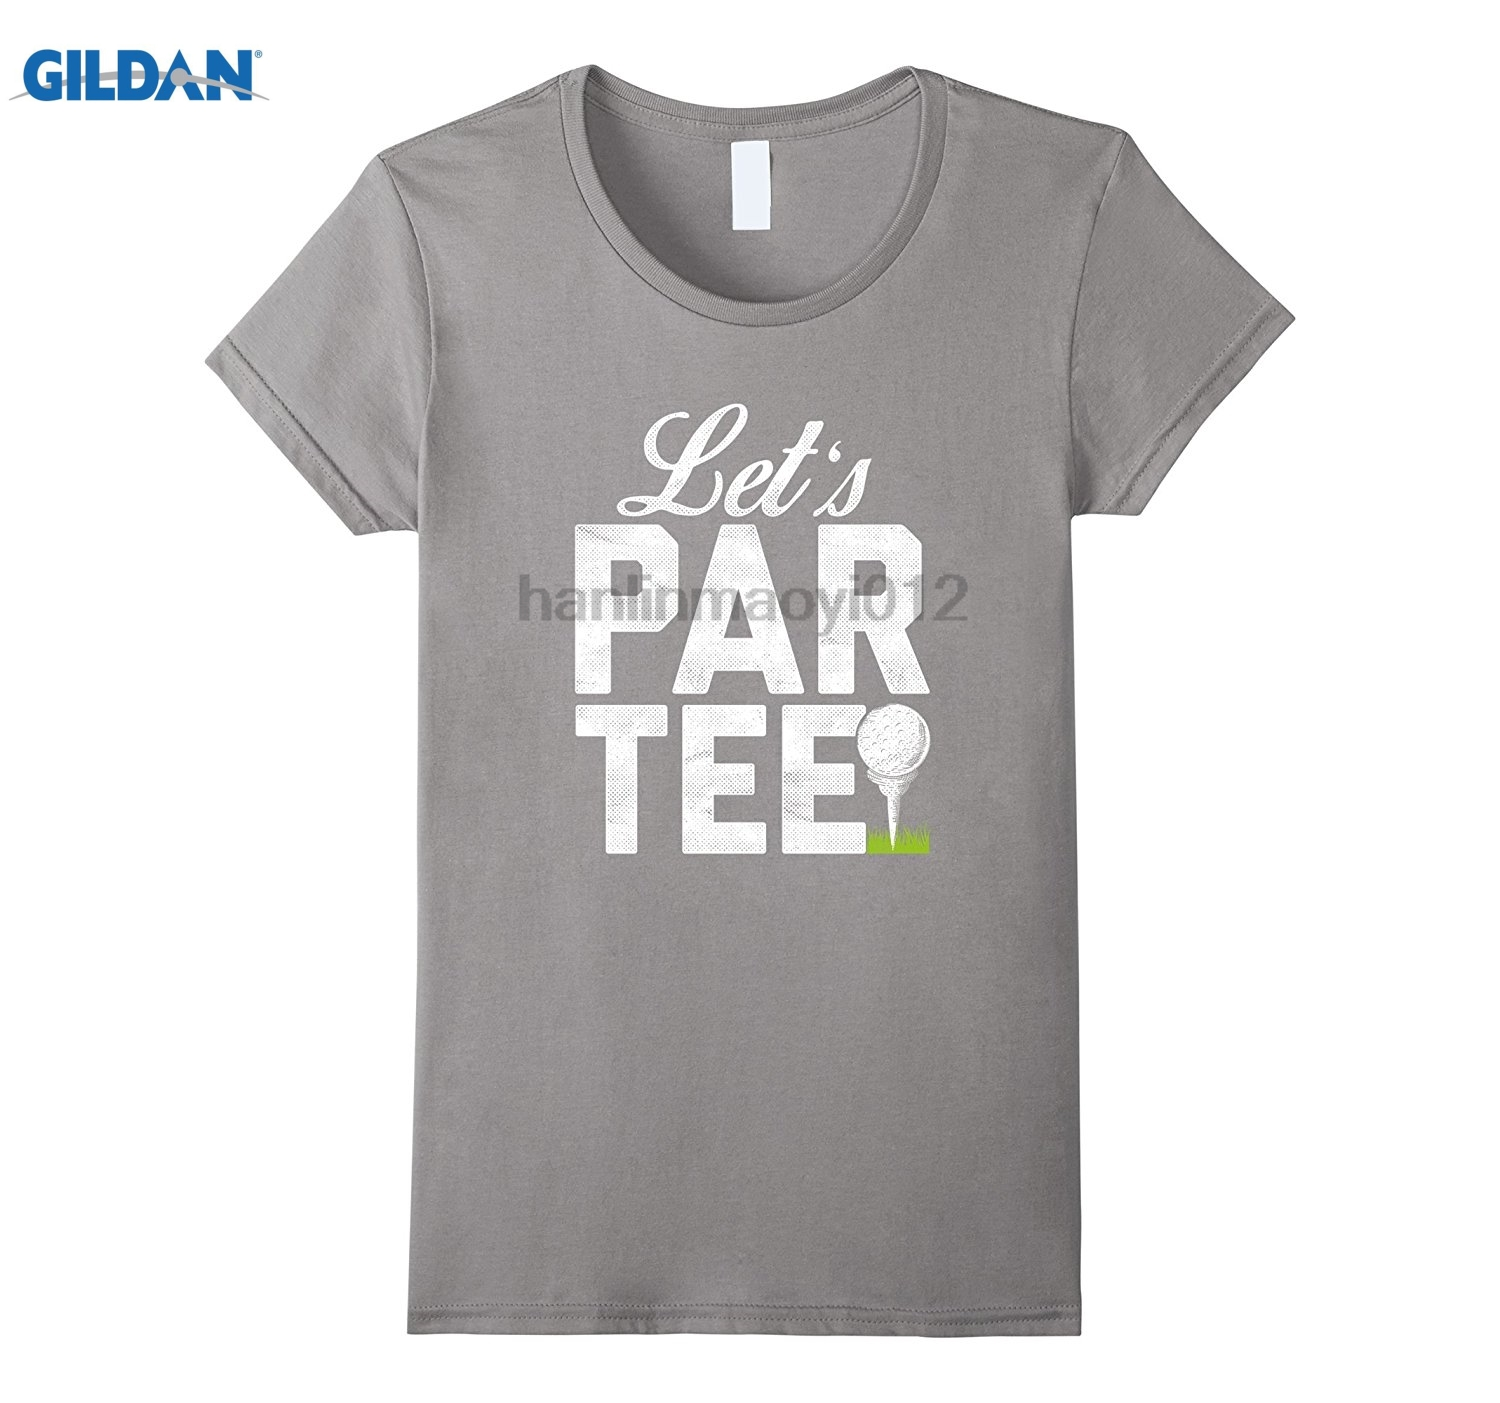 GILDAN Lets Par Tee Partee Funny Golfing T-Shirt 2018 Hot Gildan Mens T-shirt sunglasses women T-shirt